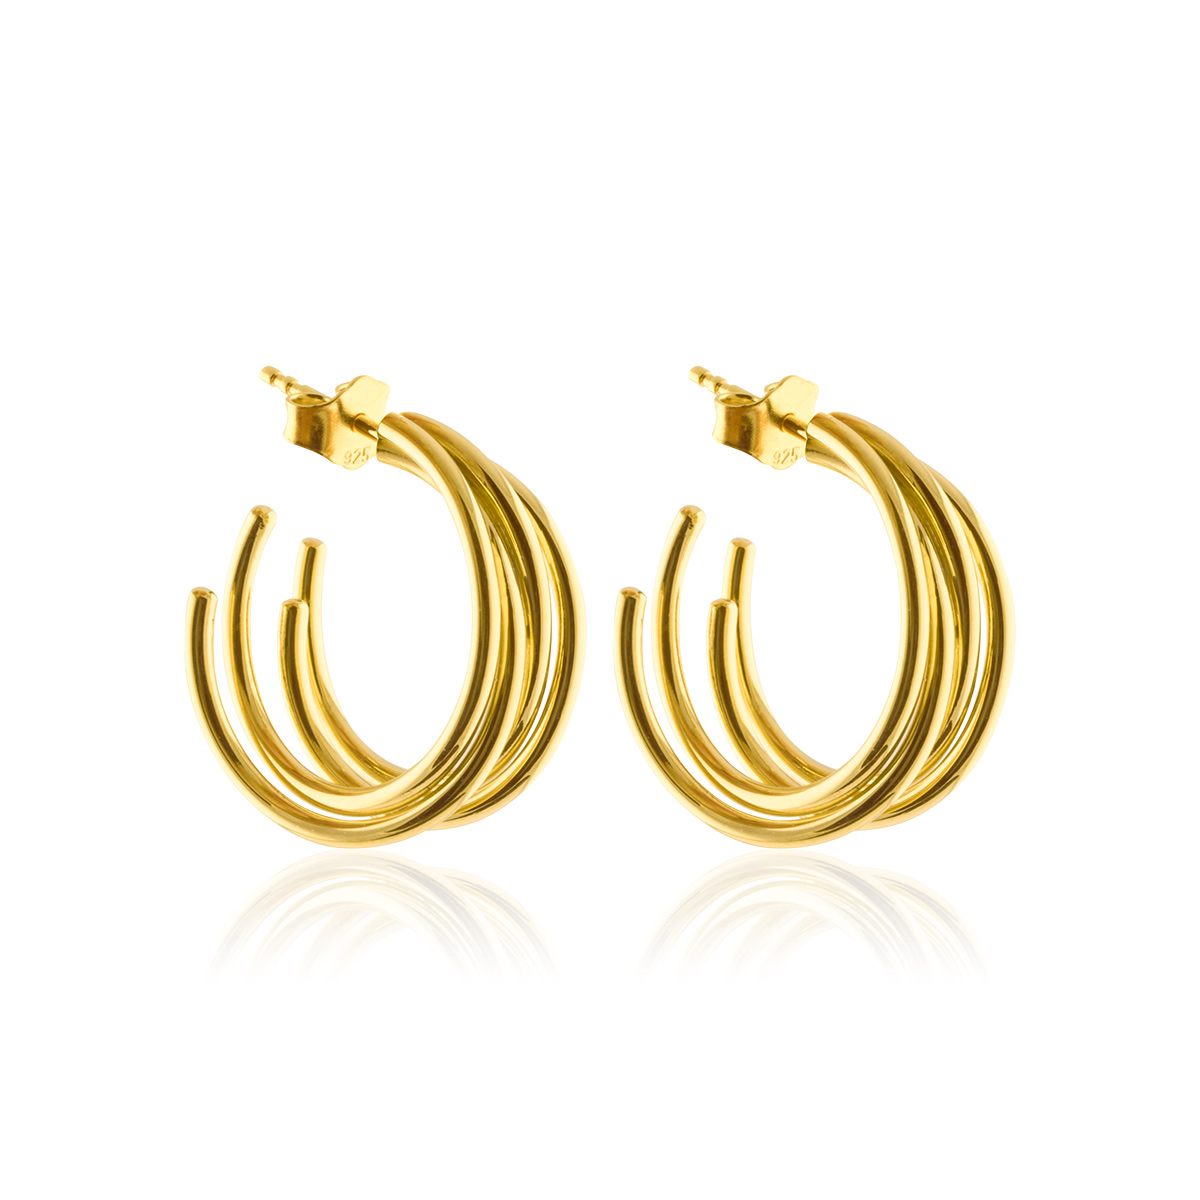 Chaos_hoops_small_guldpla_terat_ma_ssing_1290_sek_sophie_by_sophie